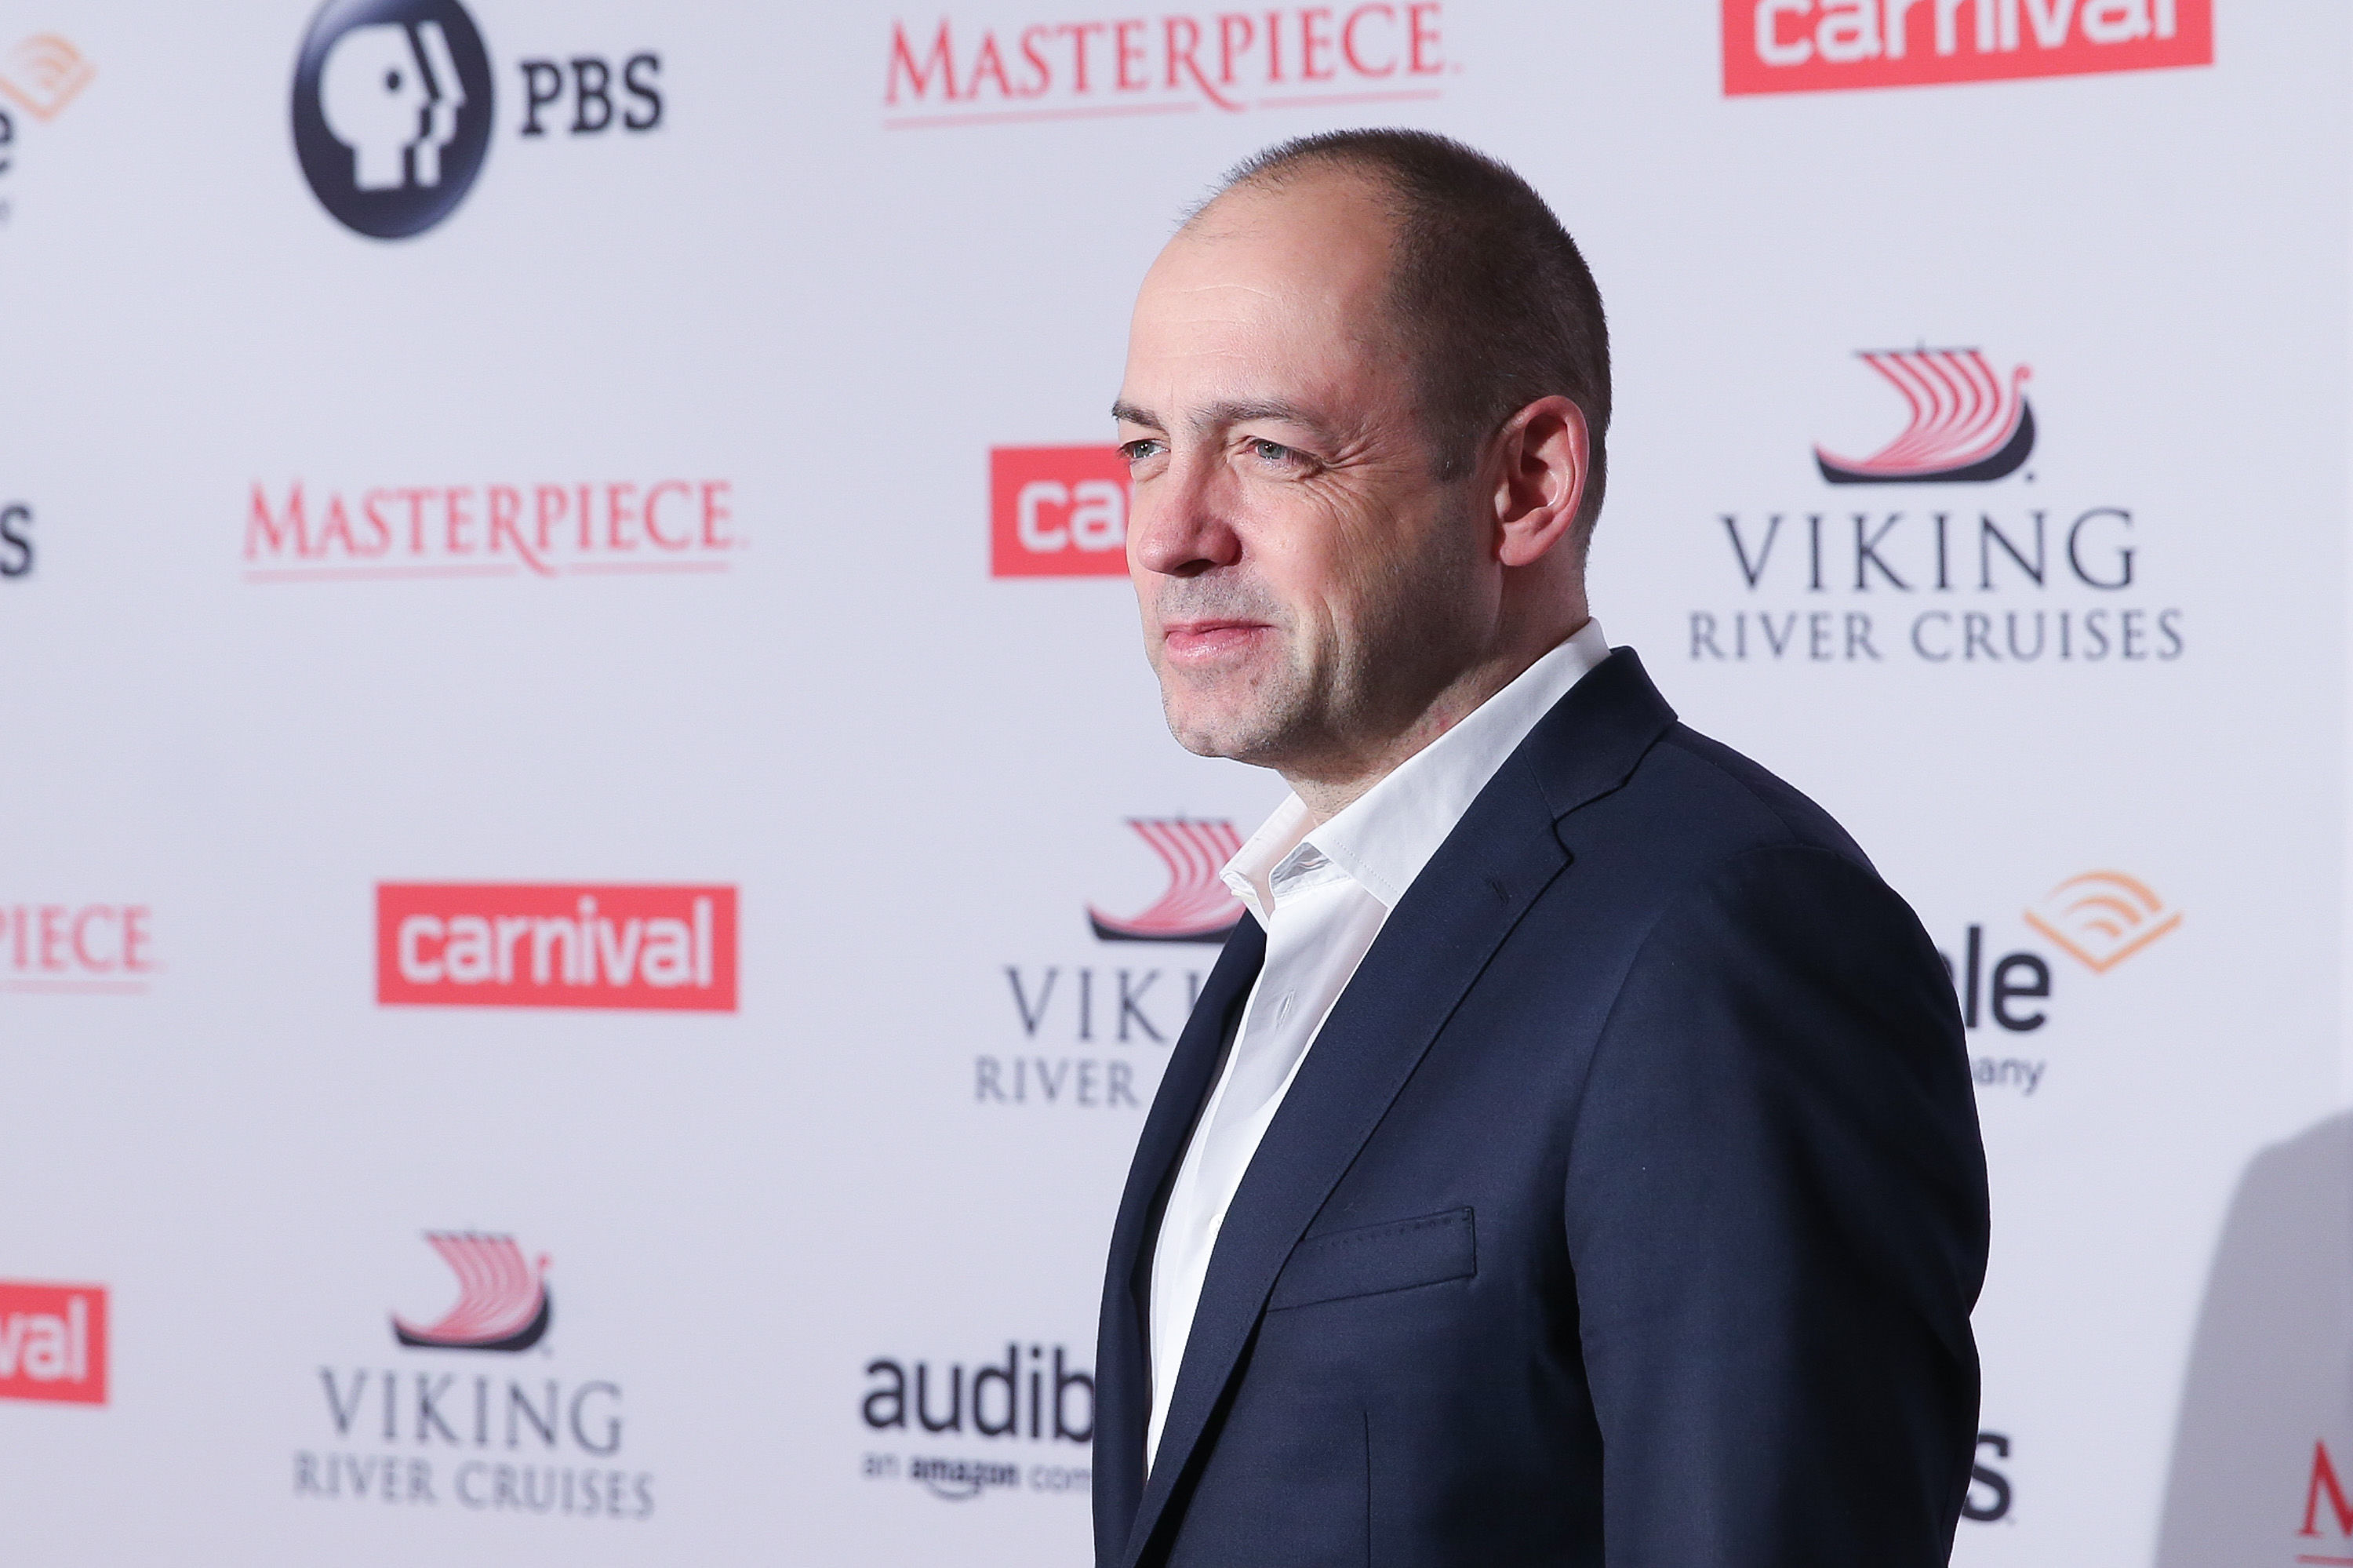 A Conversation with Downton Abbey Producer Gareth Neame